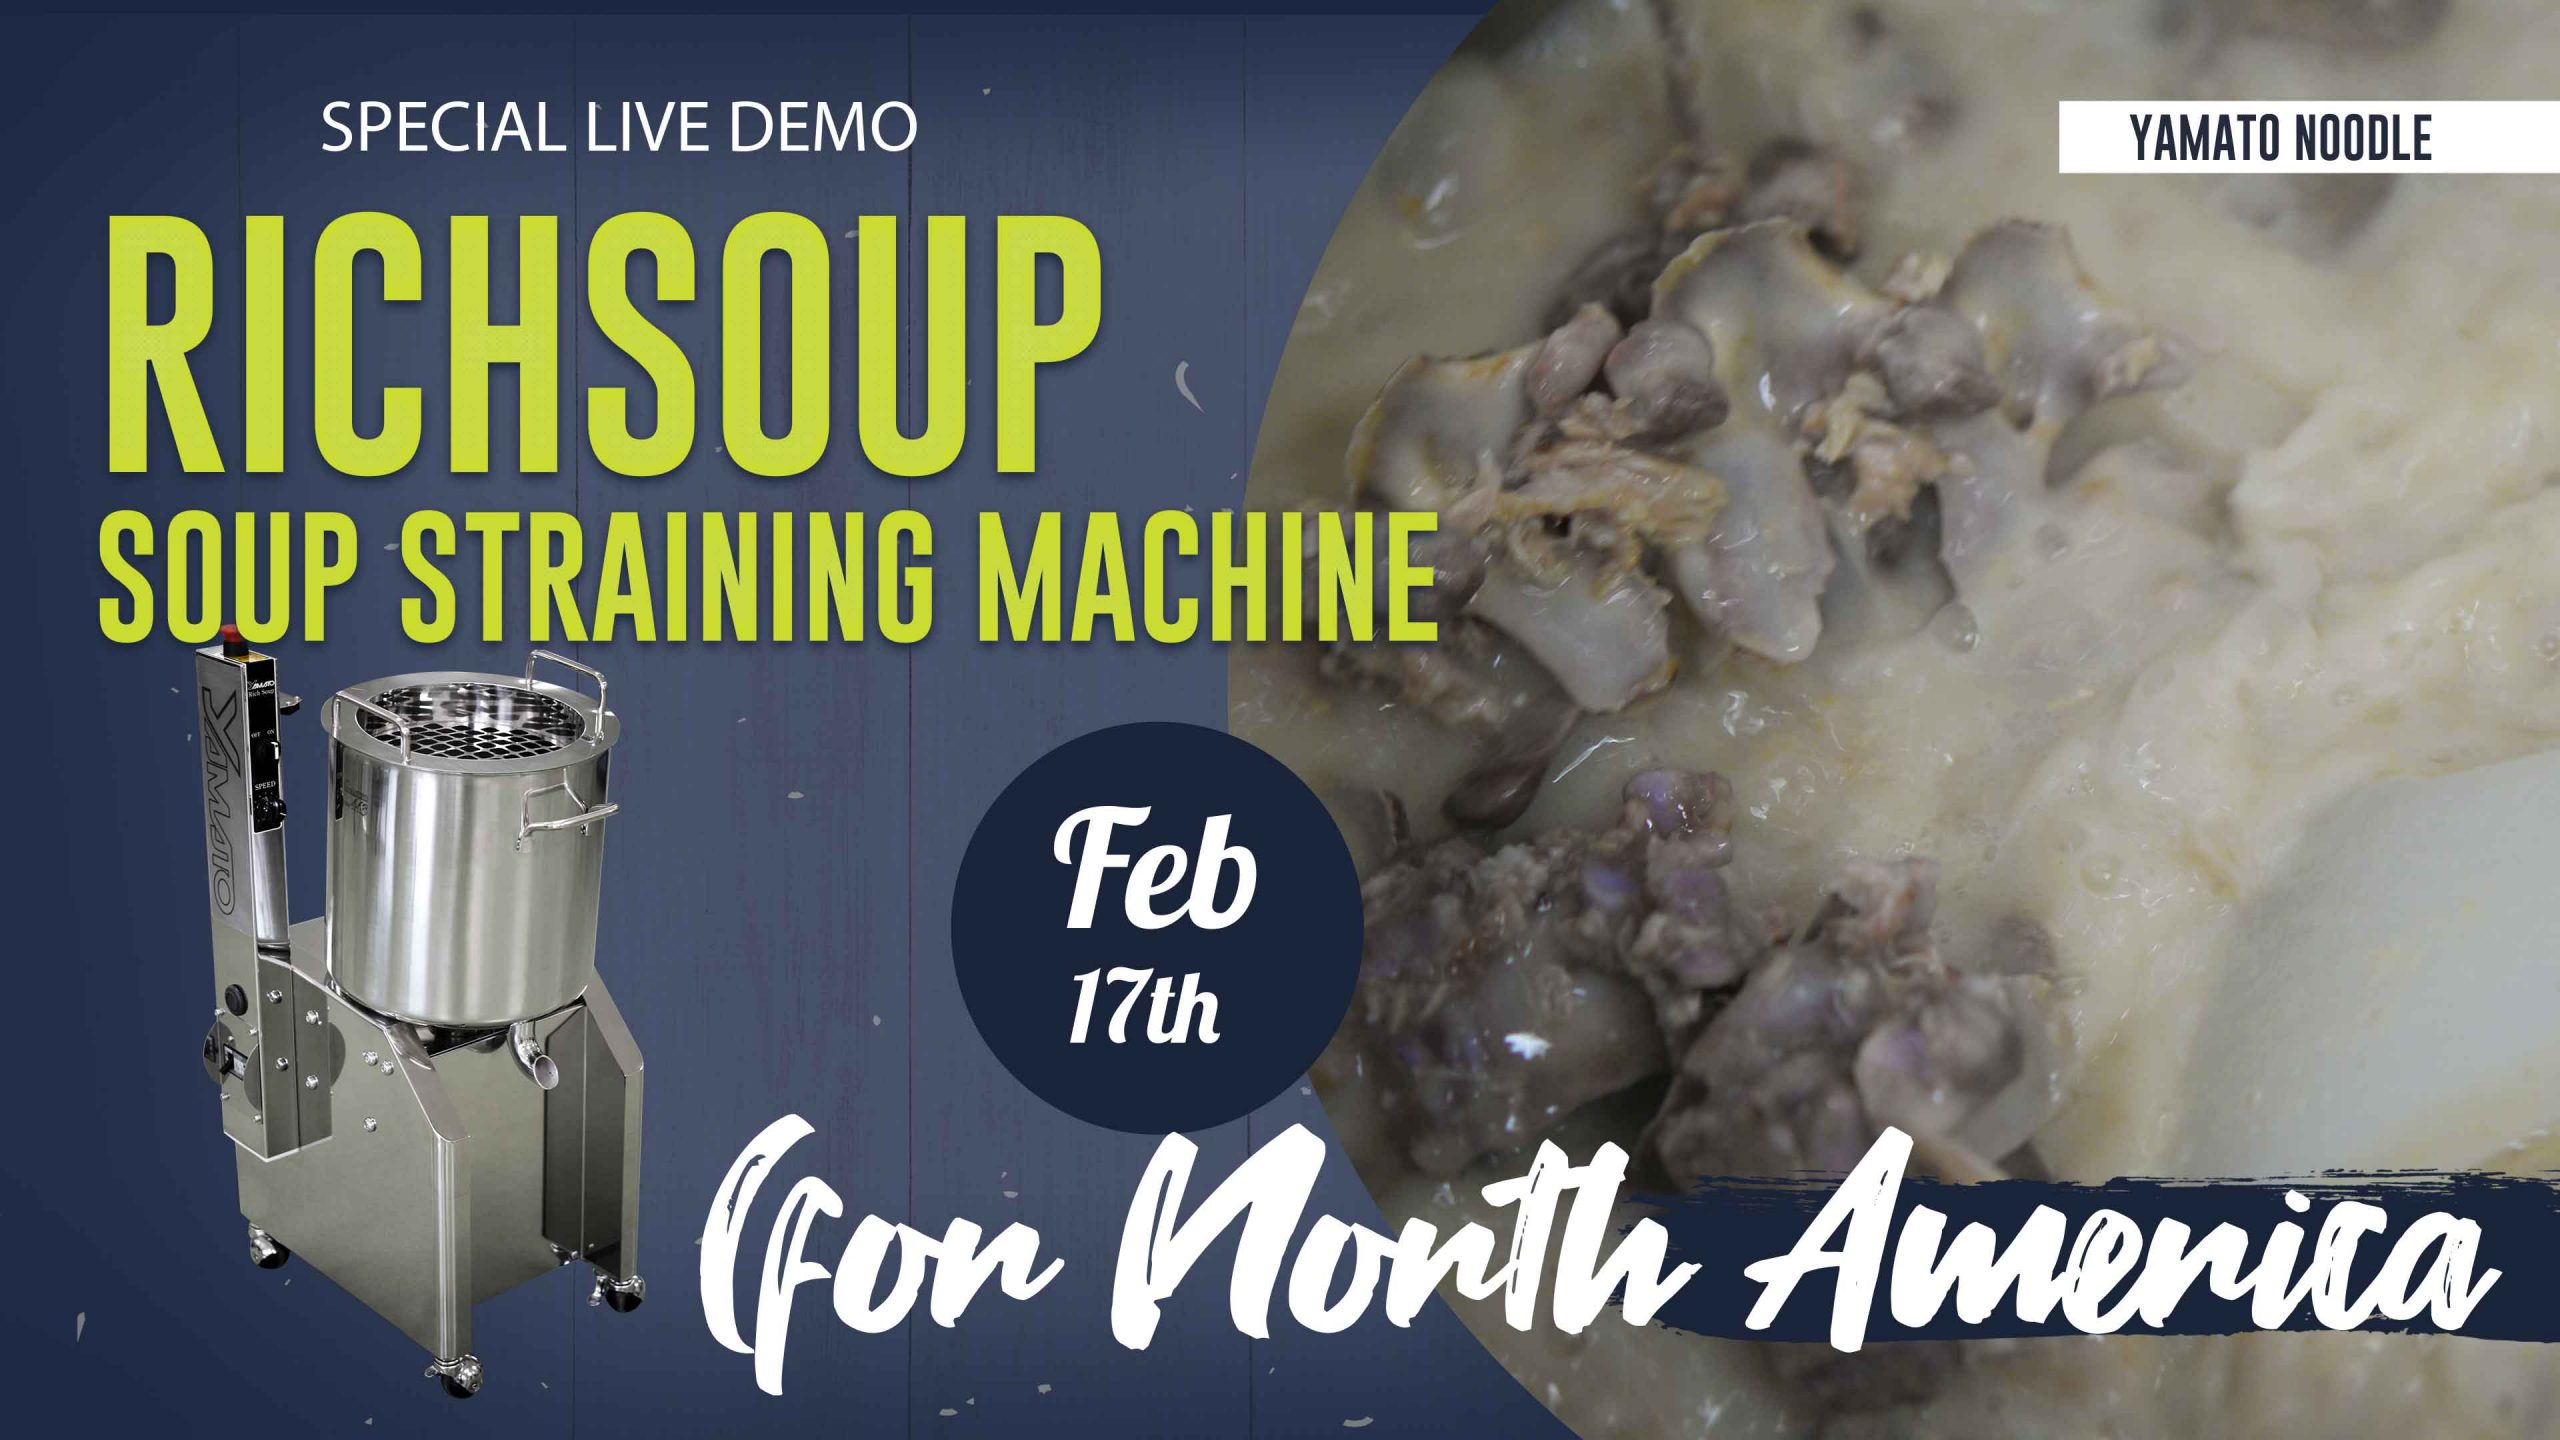 Feb. 17th- special live demo - RichSoup - soup straining machine (for North America)